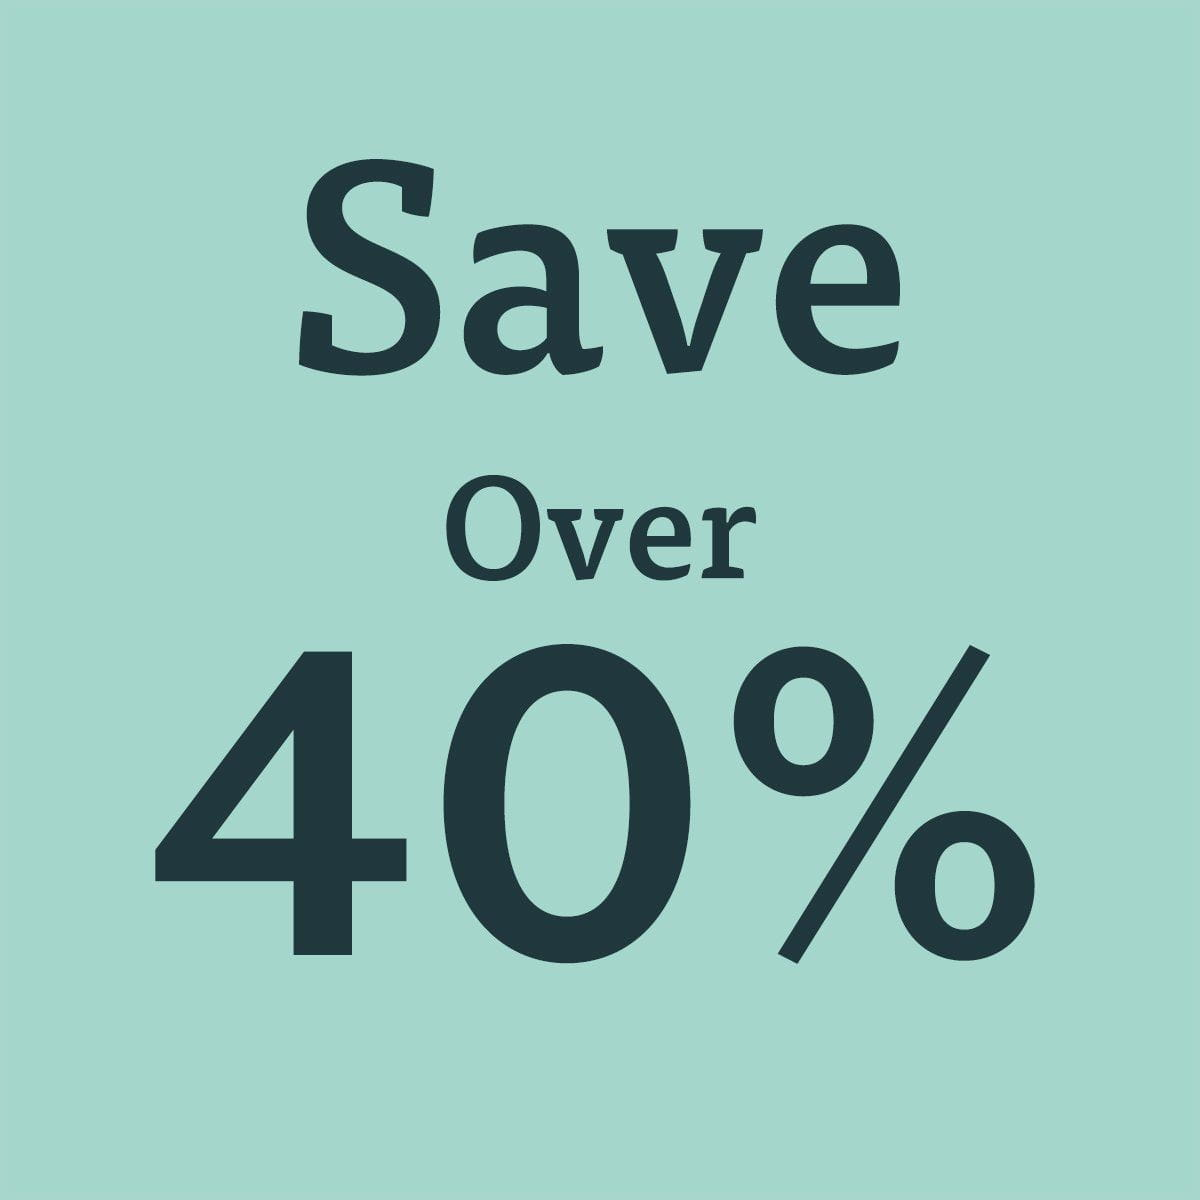 Save Over 40%